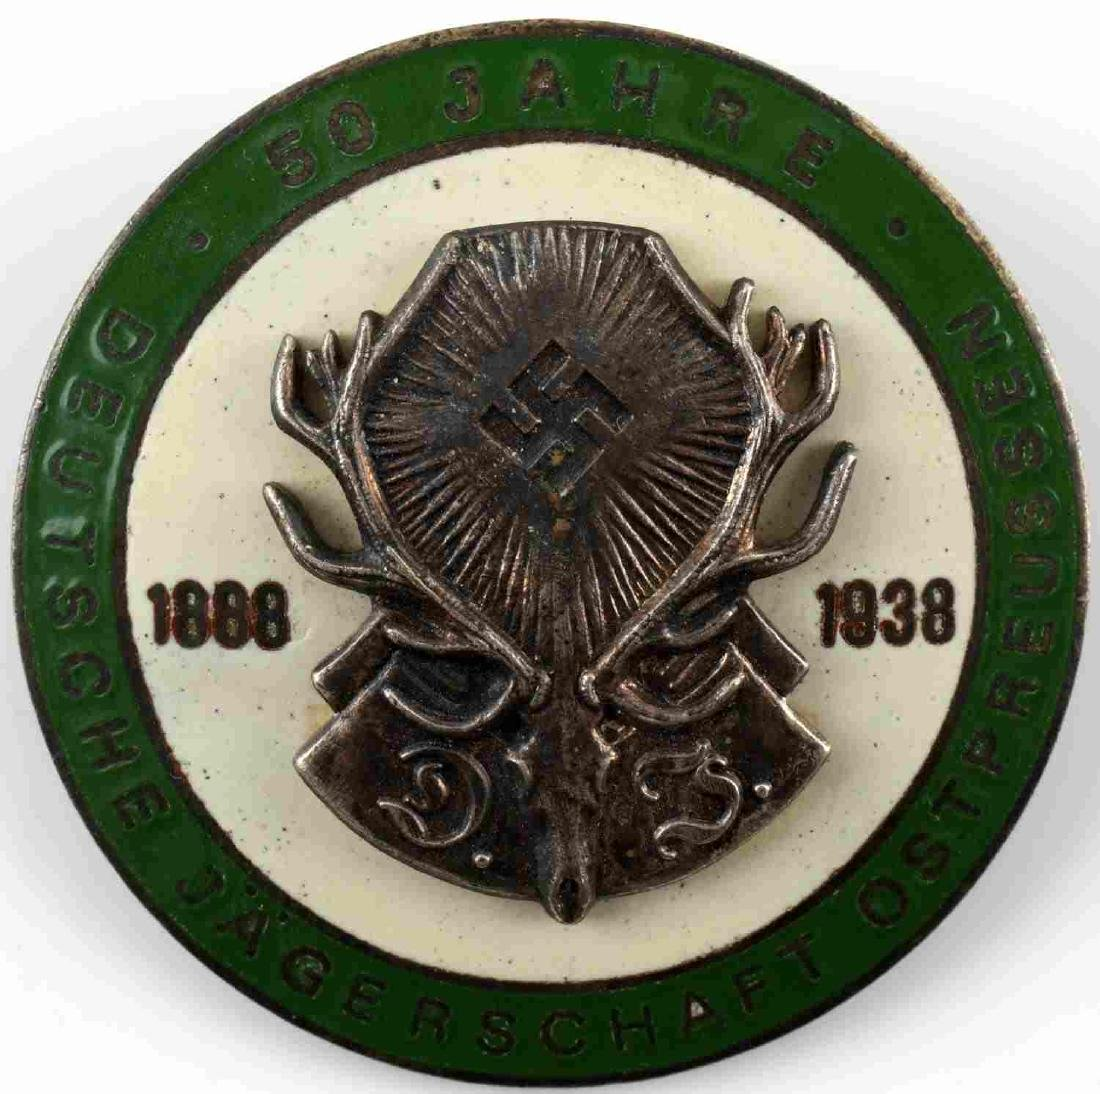 WWII GERMAN THIRD REICH HUNTING ASSOCIATION BADGE